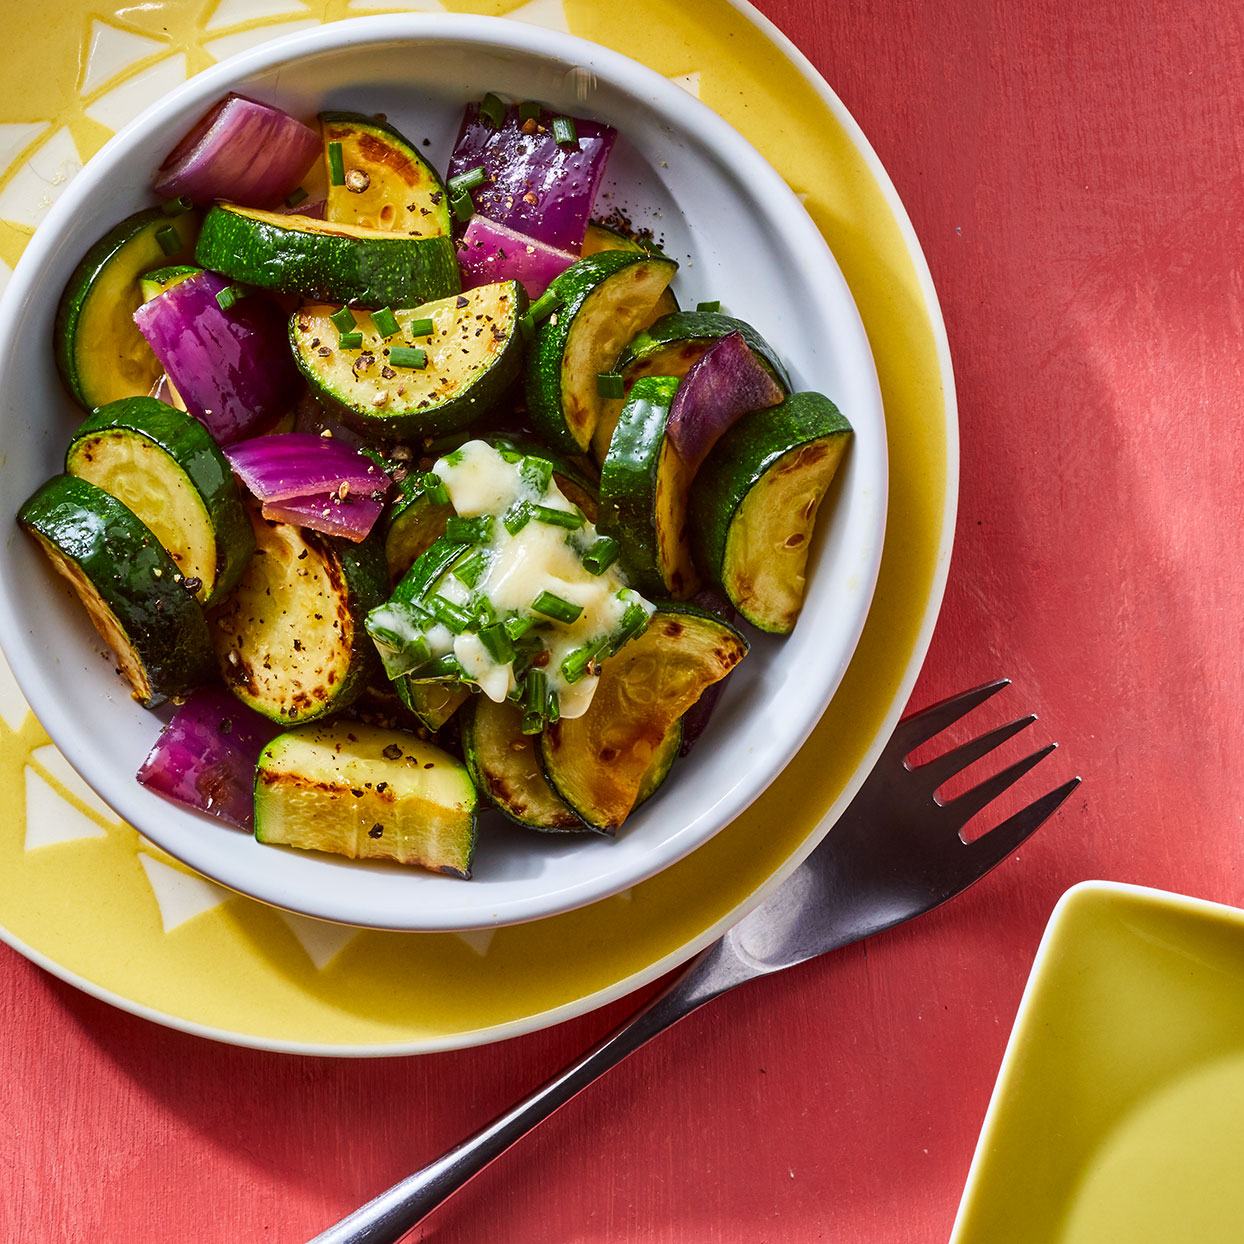 Switch up the chives for whatever's growing in your garden--basil or dill would also be delicious in the compound butter that tops this simple sautéed zucchini recipe. Source: EatingWell Magazine, June 2020